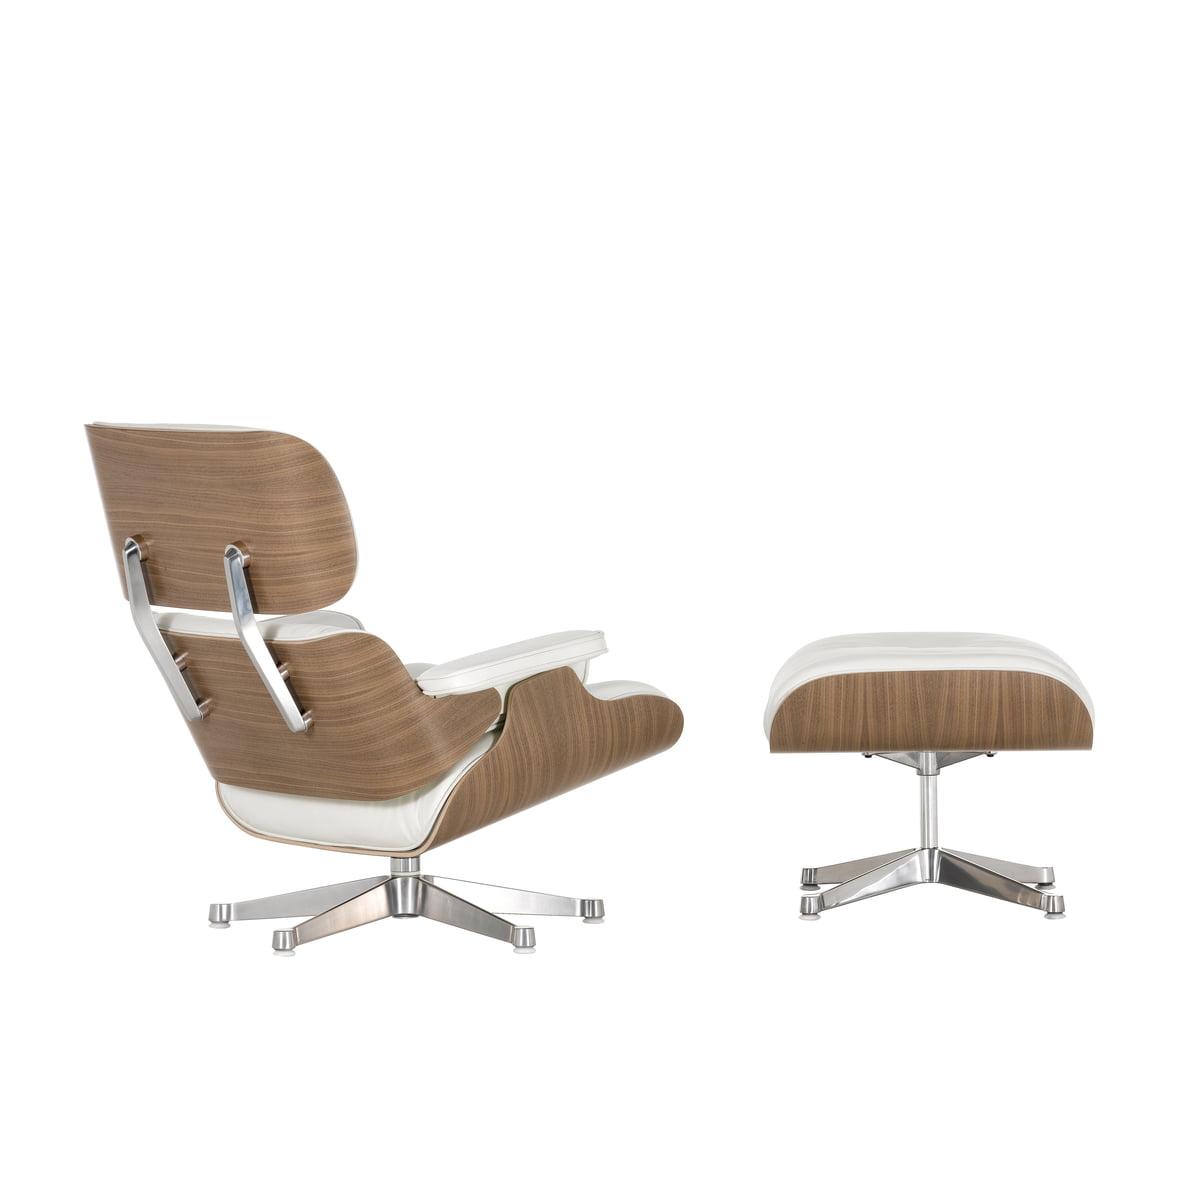 Vitra lounge chair ottoman nussbaum wei for Vitra lounge chair nachbau